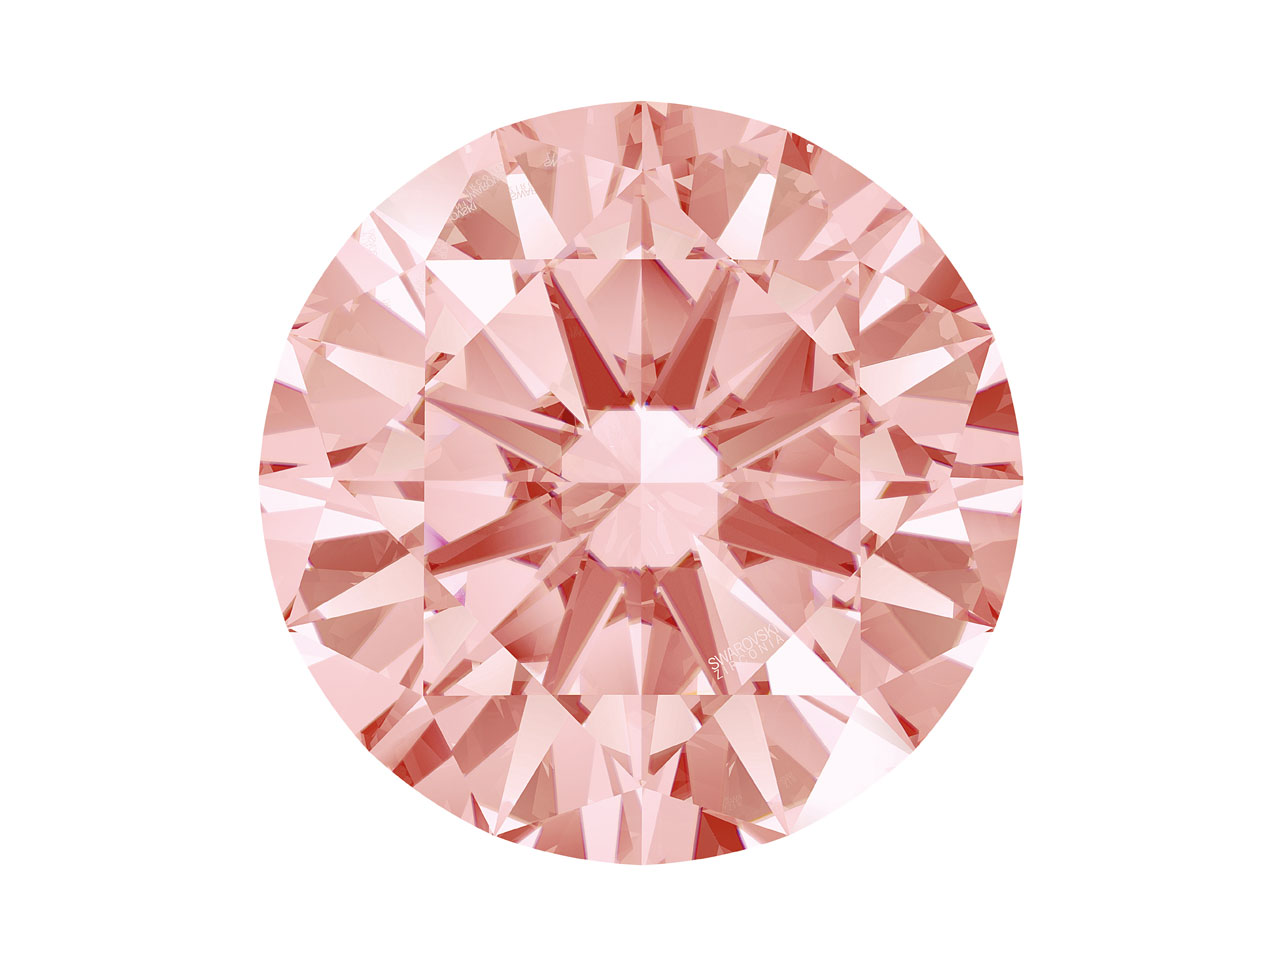 Swarovski Zirconia Round           Pure Brilliance Cut 2.0mm Fancy    Morganite